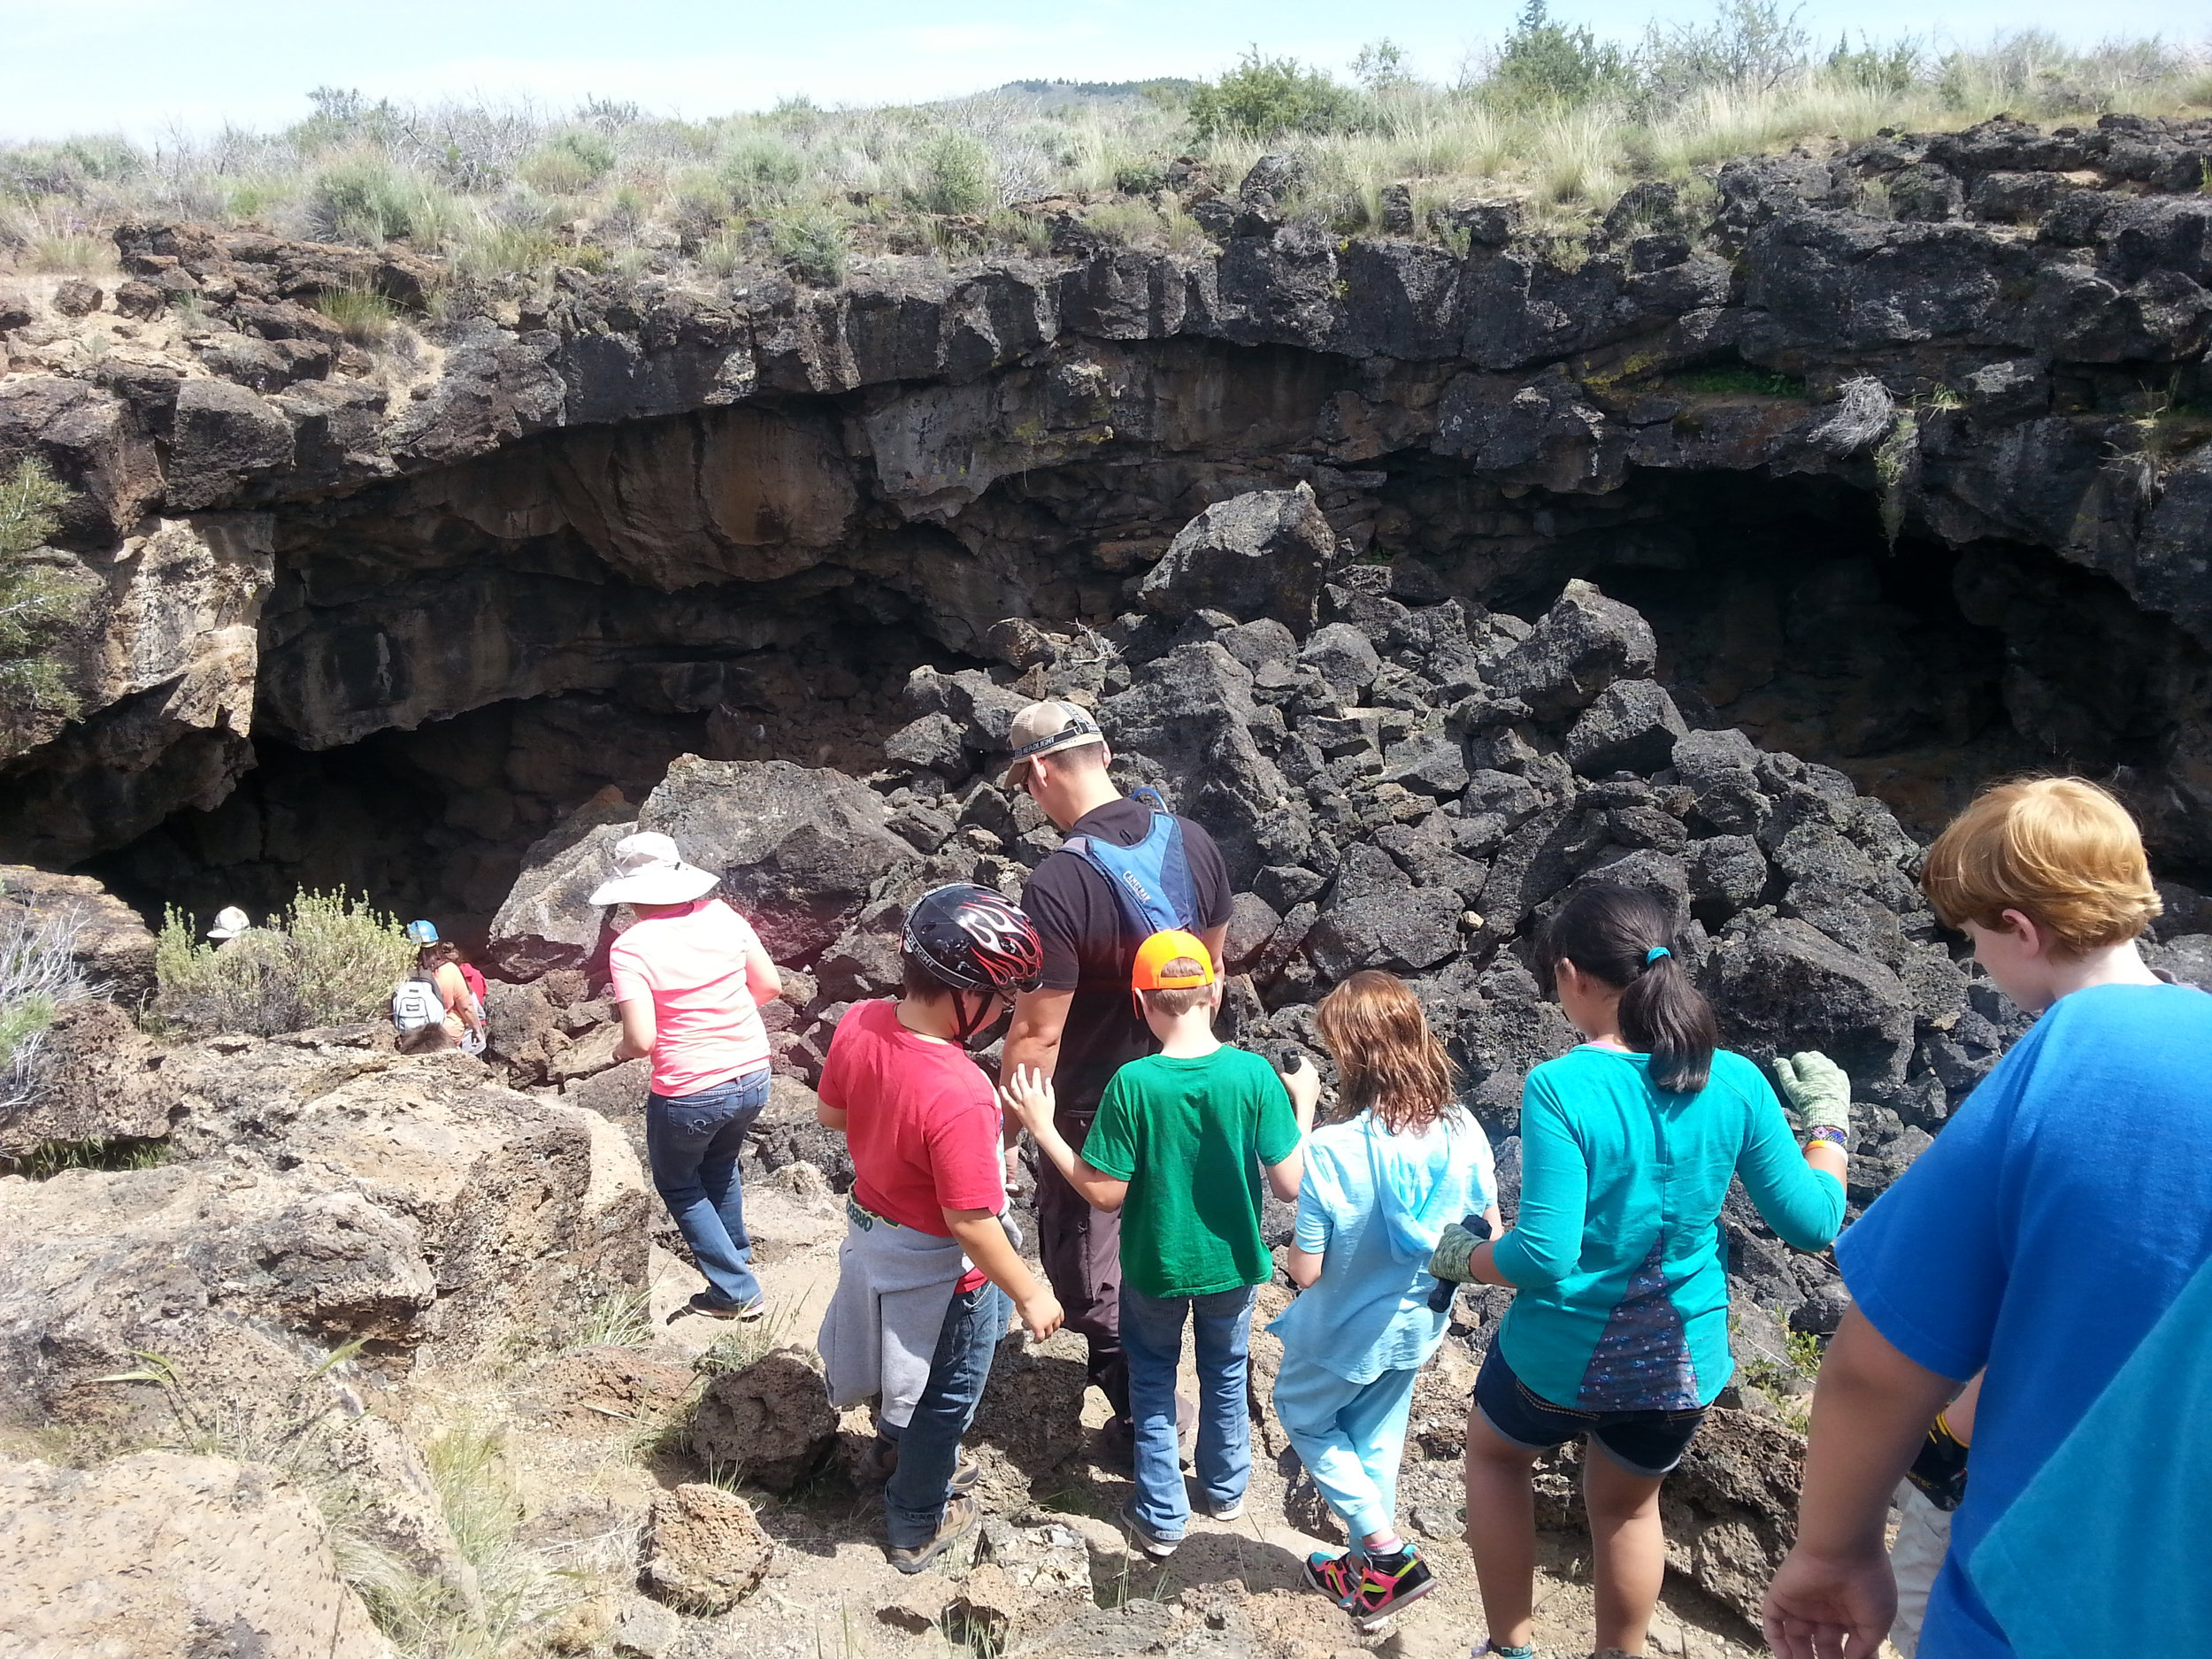 LAVA BEDS NATIONAL MONUMENT - What to do for Spring Break in Southern Oregon- Things to do - Places to go with kids